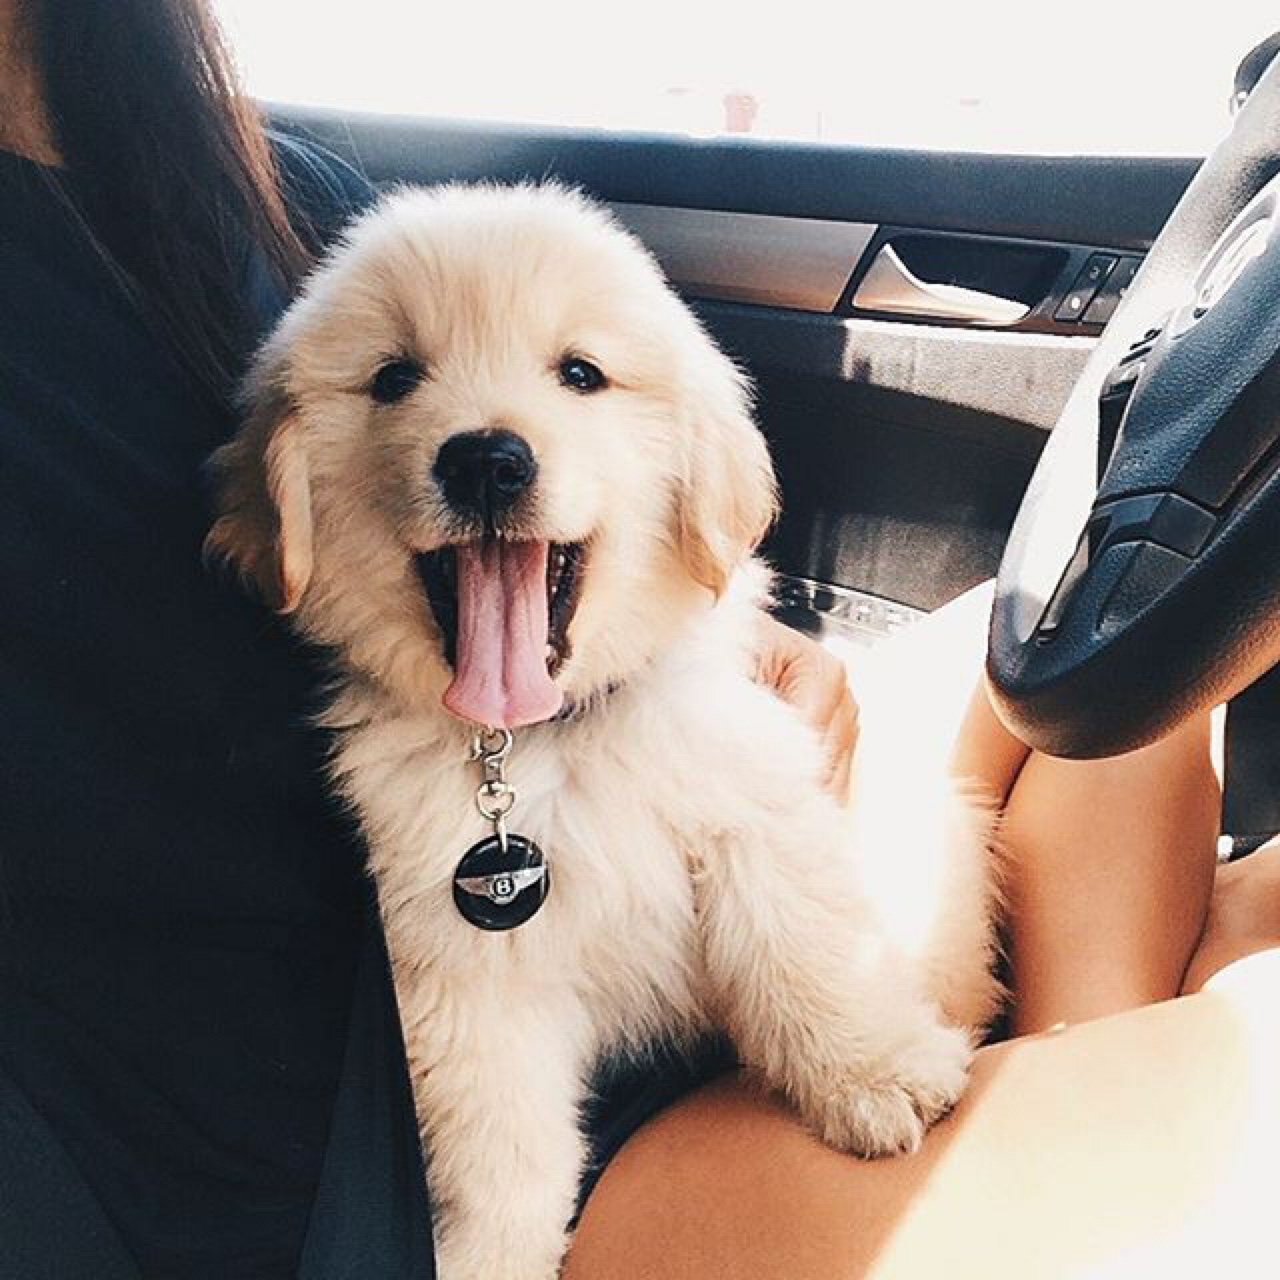 127 Images About Puppys On We Heart It See More About Dog Animal And Puppy